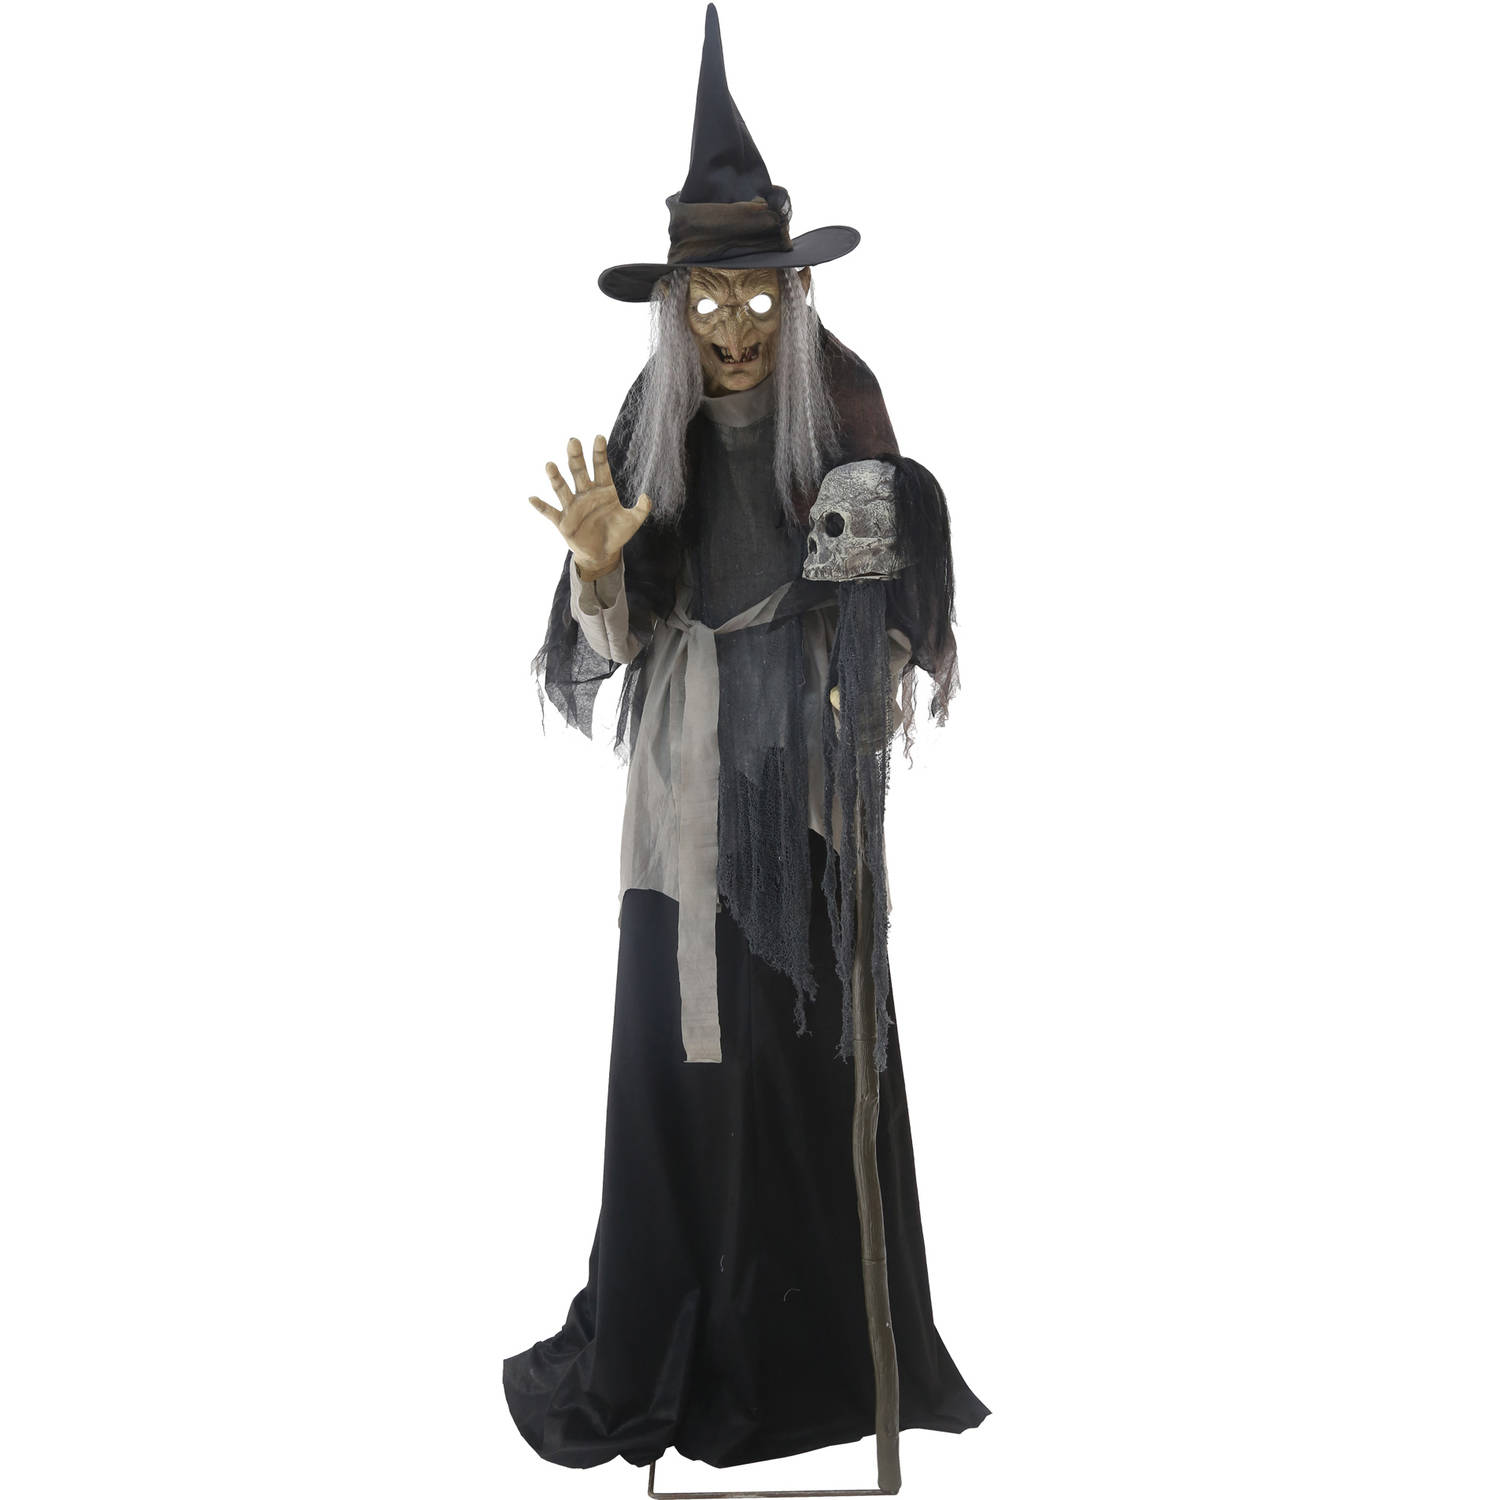 Lunging Haggard Witch Animated Halloween Decoration image